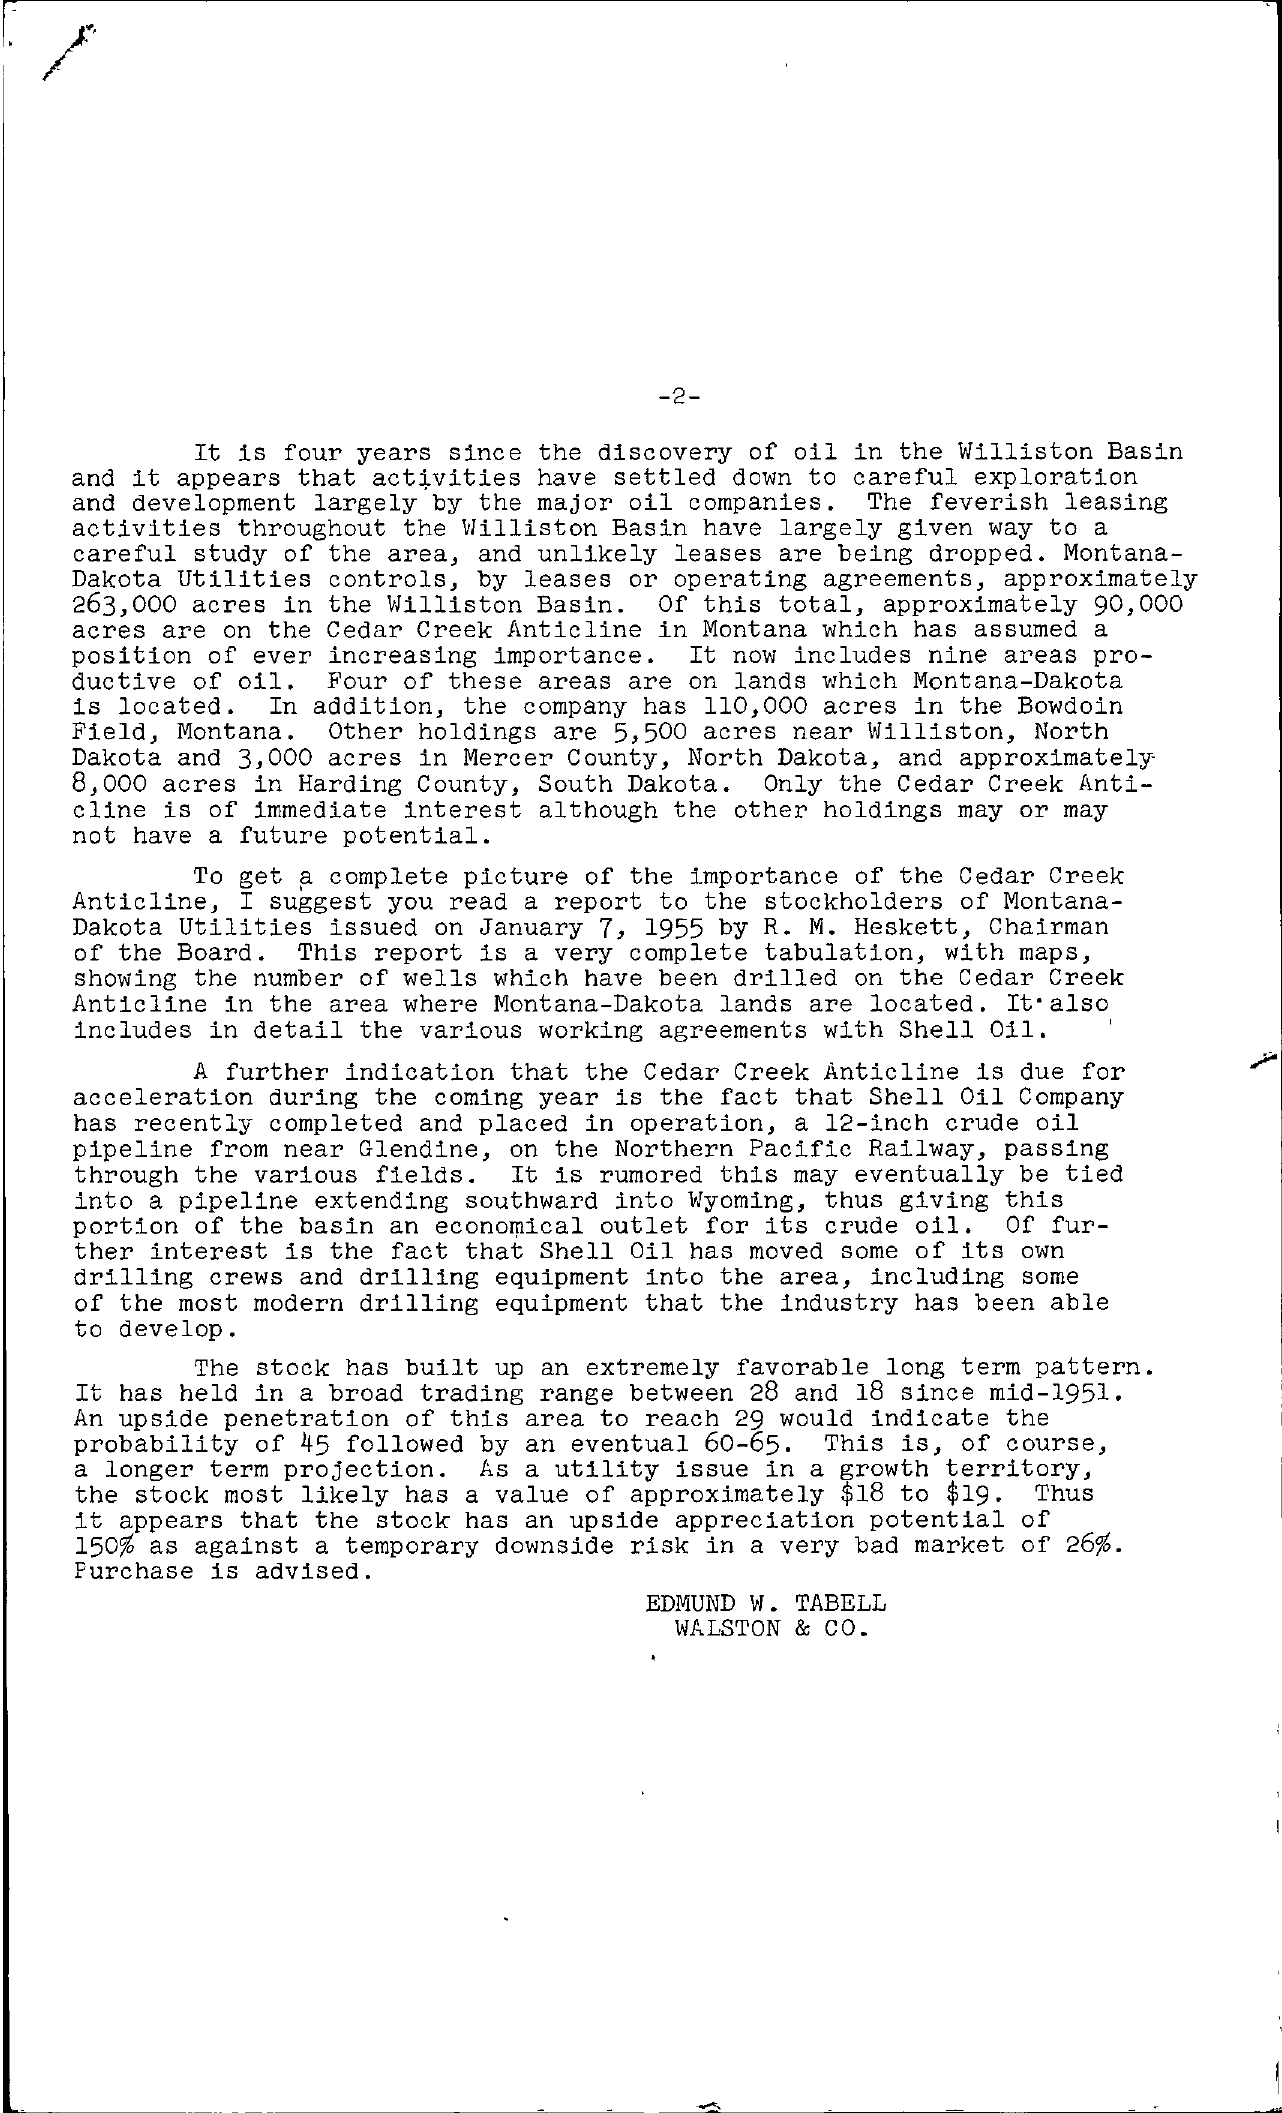 Tabell's Market Letter - January 21, 1955 page 2